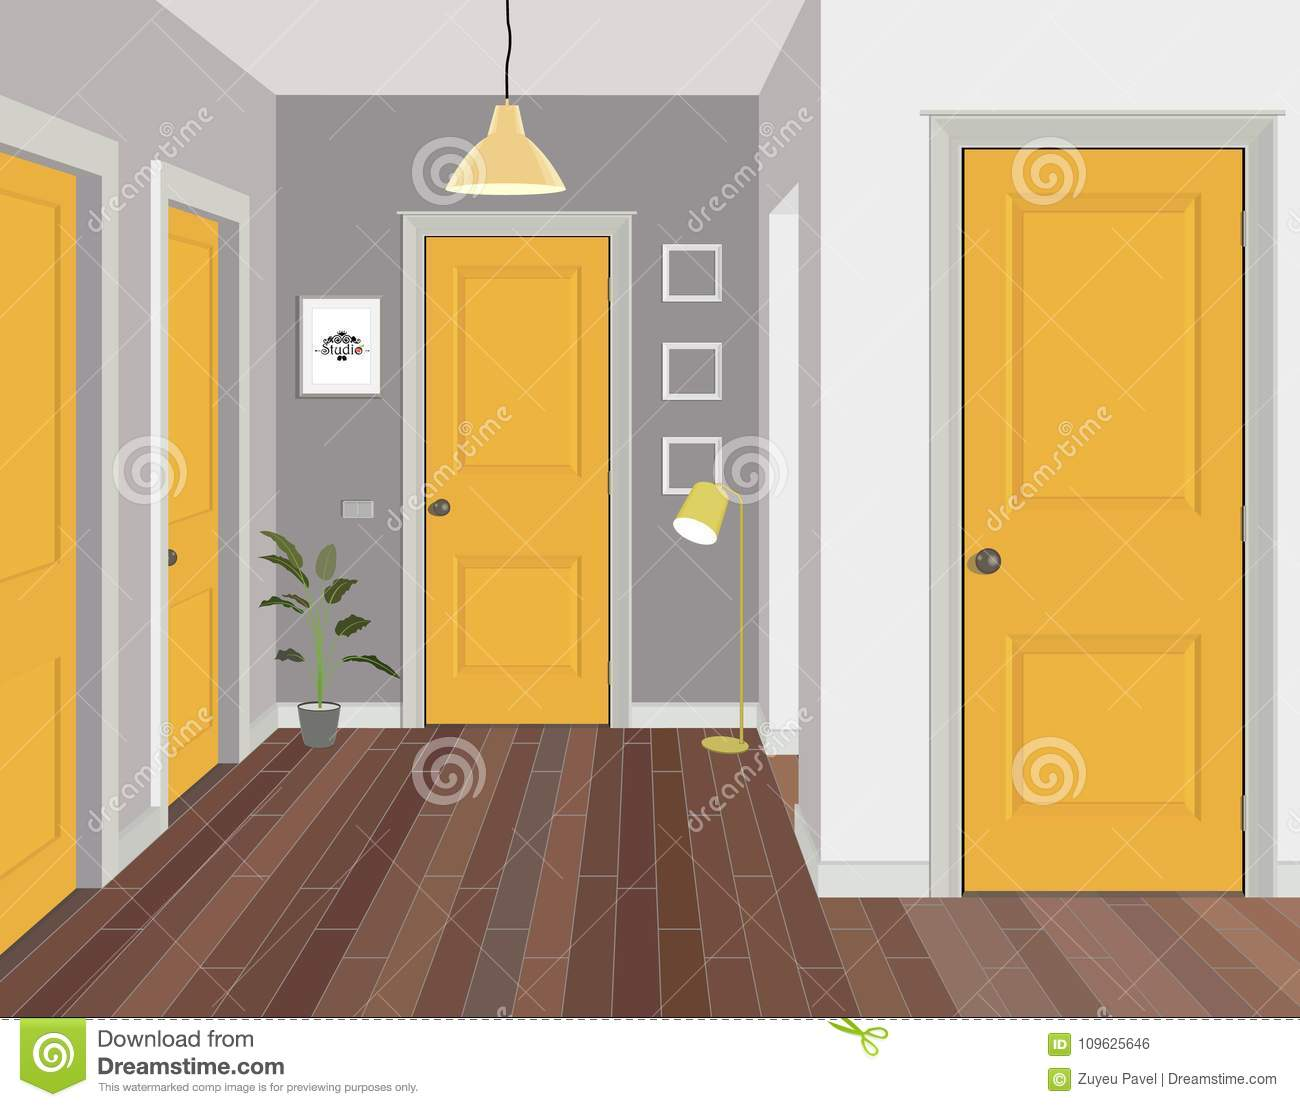 illustration of a room with yellow doors interior of the room with